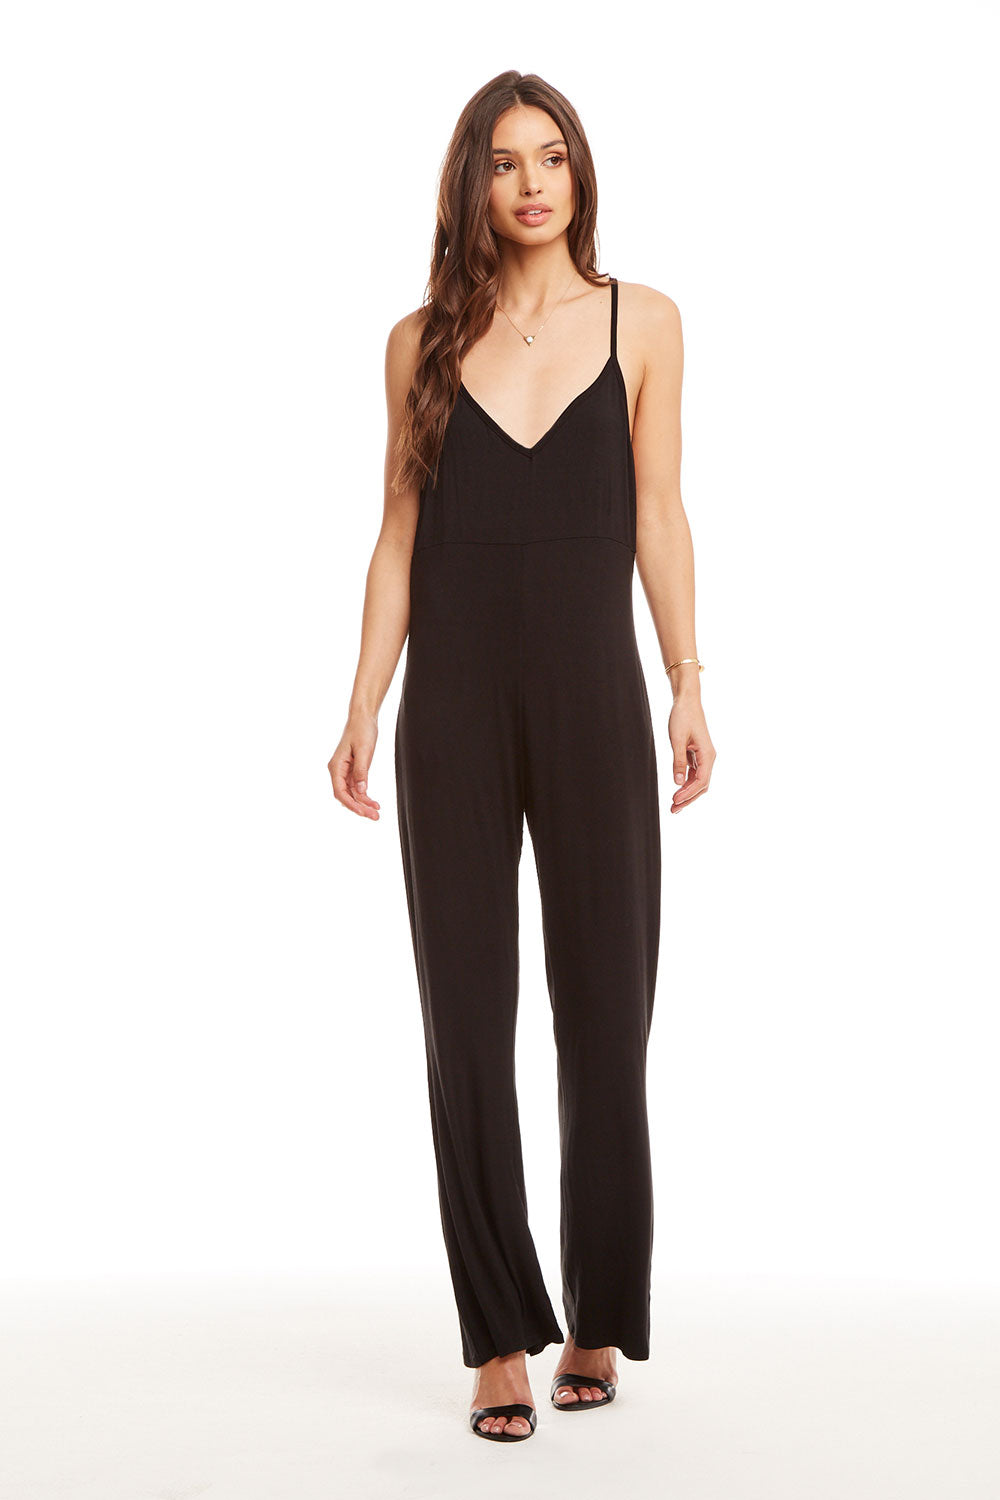 Cool Jersey Racer Back Jumpsuit WOMENS chaserbrand4.myshopify.com